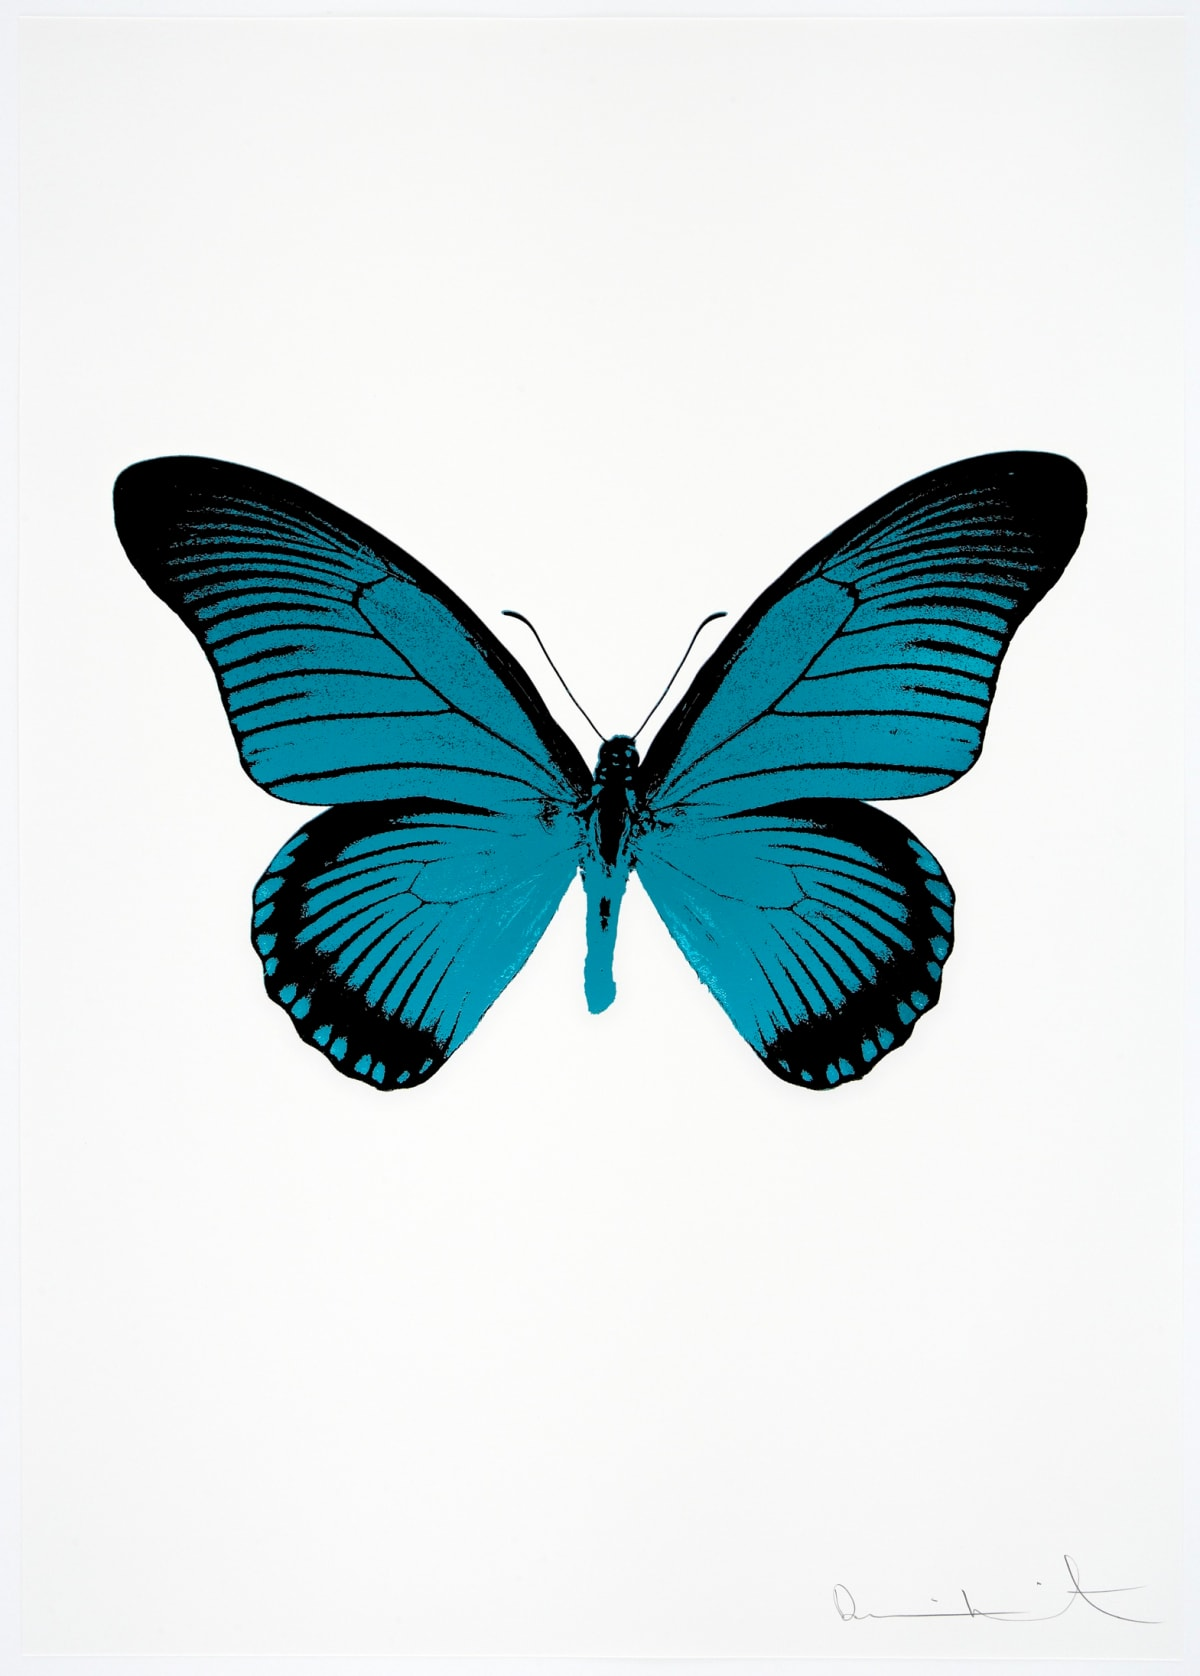 Damien Hirst The Souls IV - Topaz/Raven Black, 2010 2 colour foil block on 300gsm Arches 88 archival paper. Signed and numbered. Published by Paul Stolper and Other Criteria 72 x 51cm OC8045 / 1418-68 Edition of 15